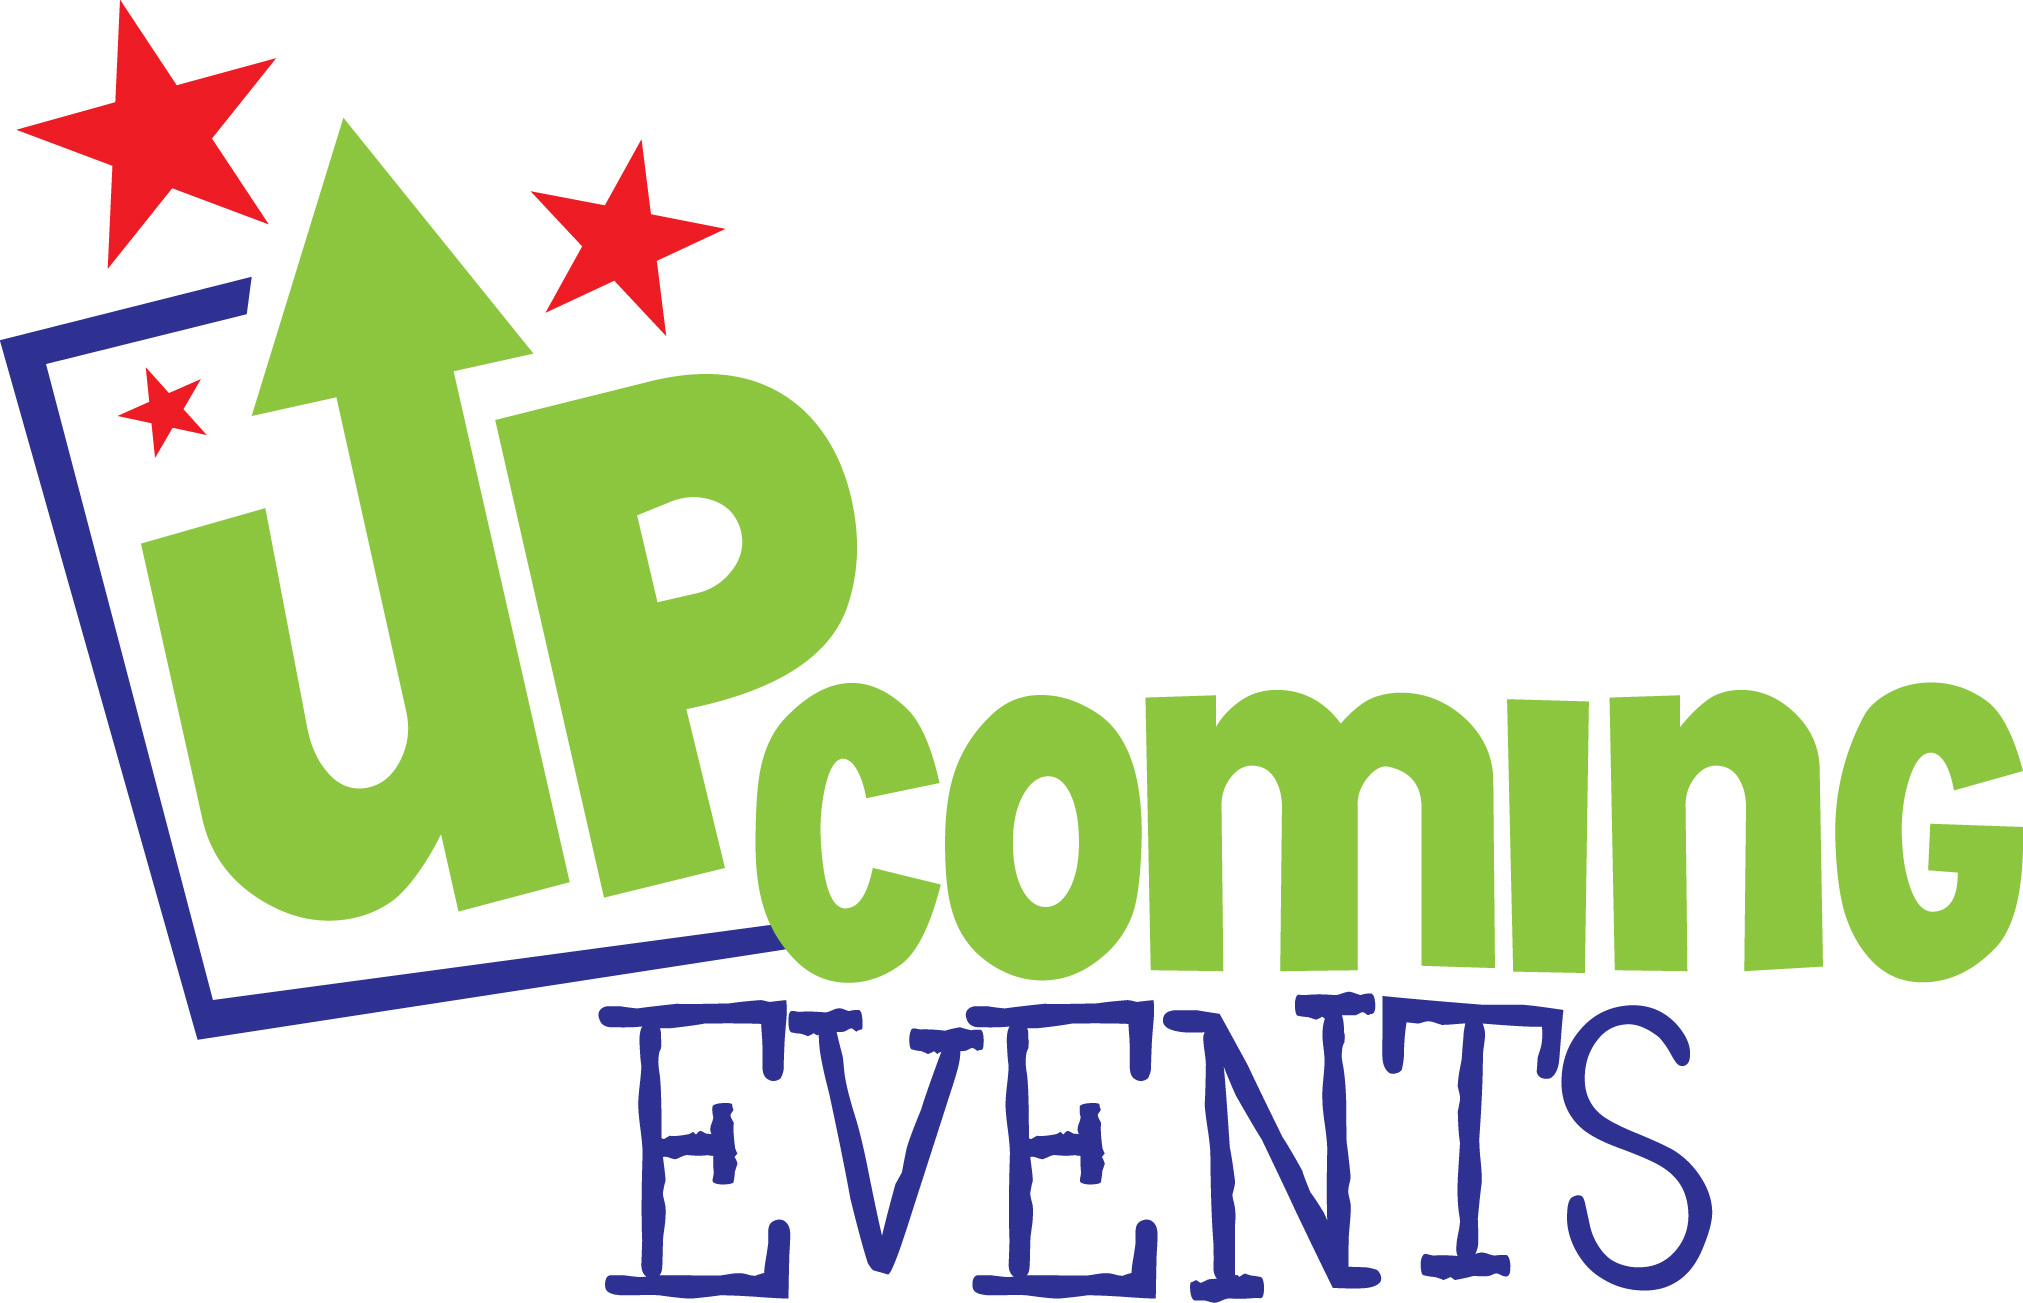 Upcomingevents Clipart-Upcomingevents Clipart-19